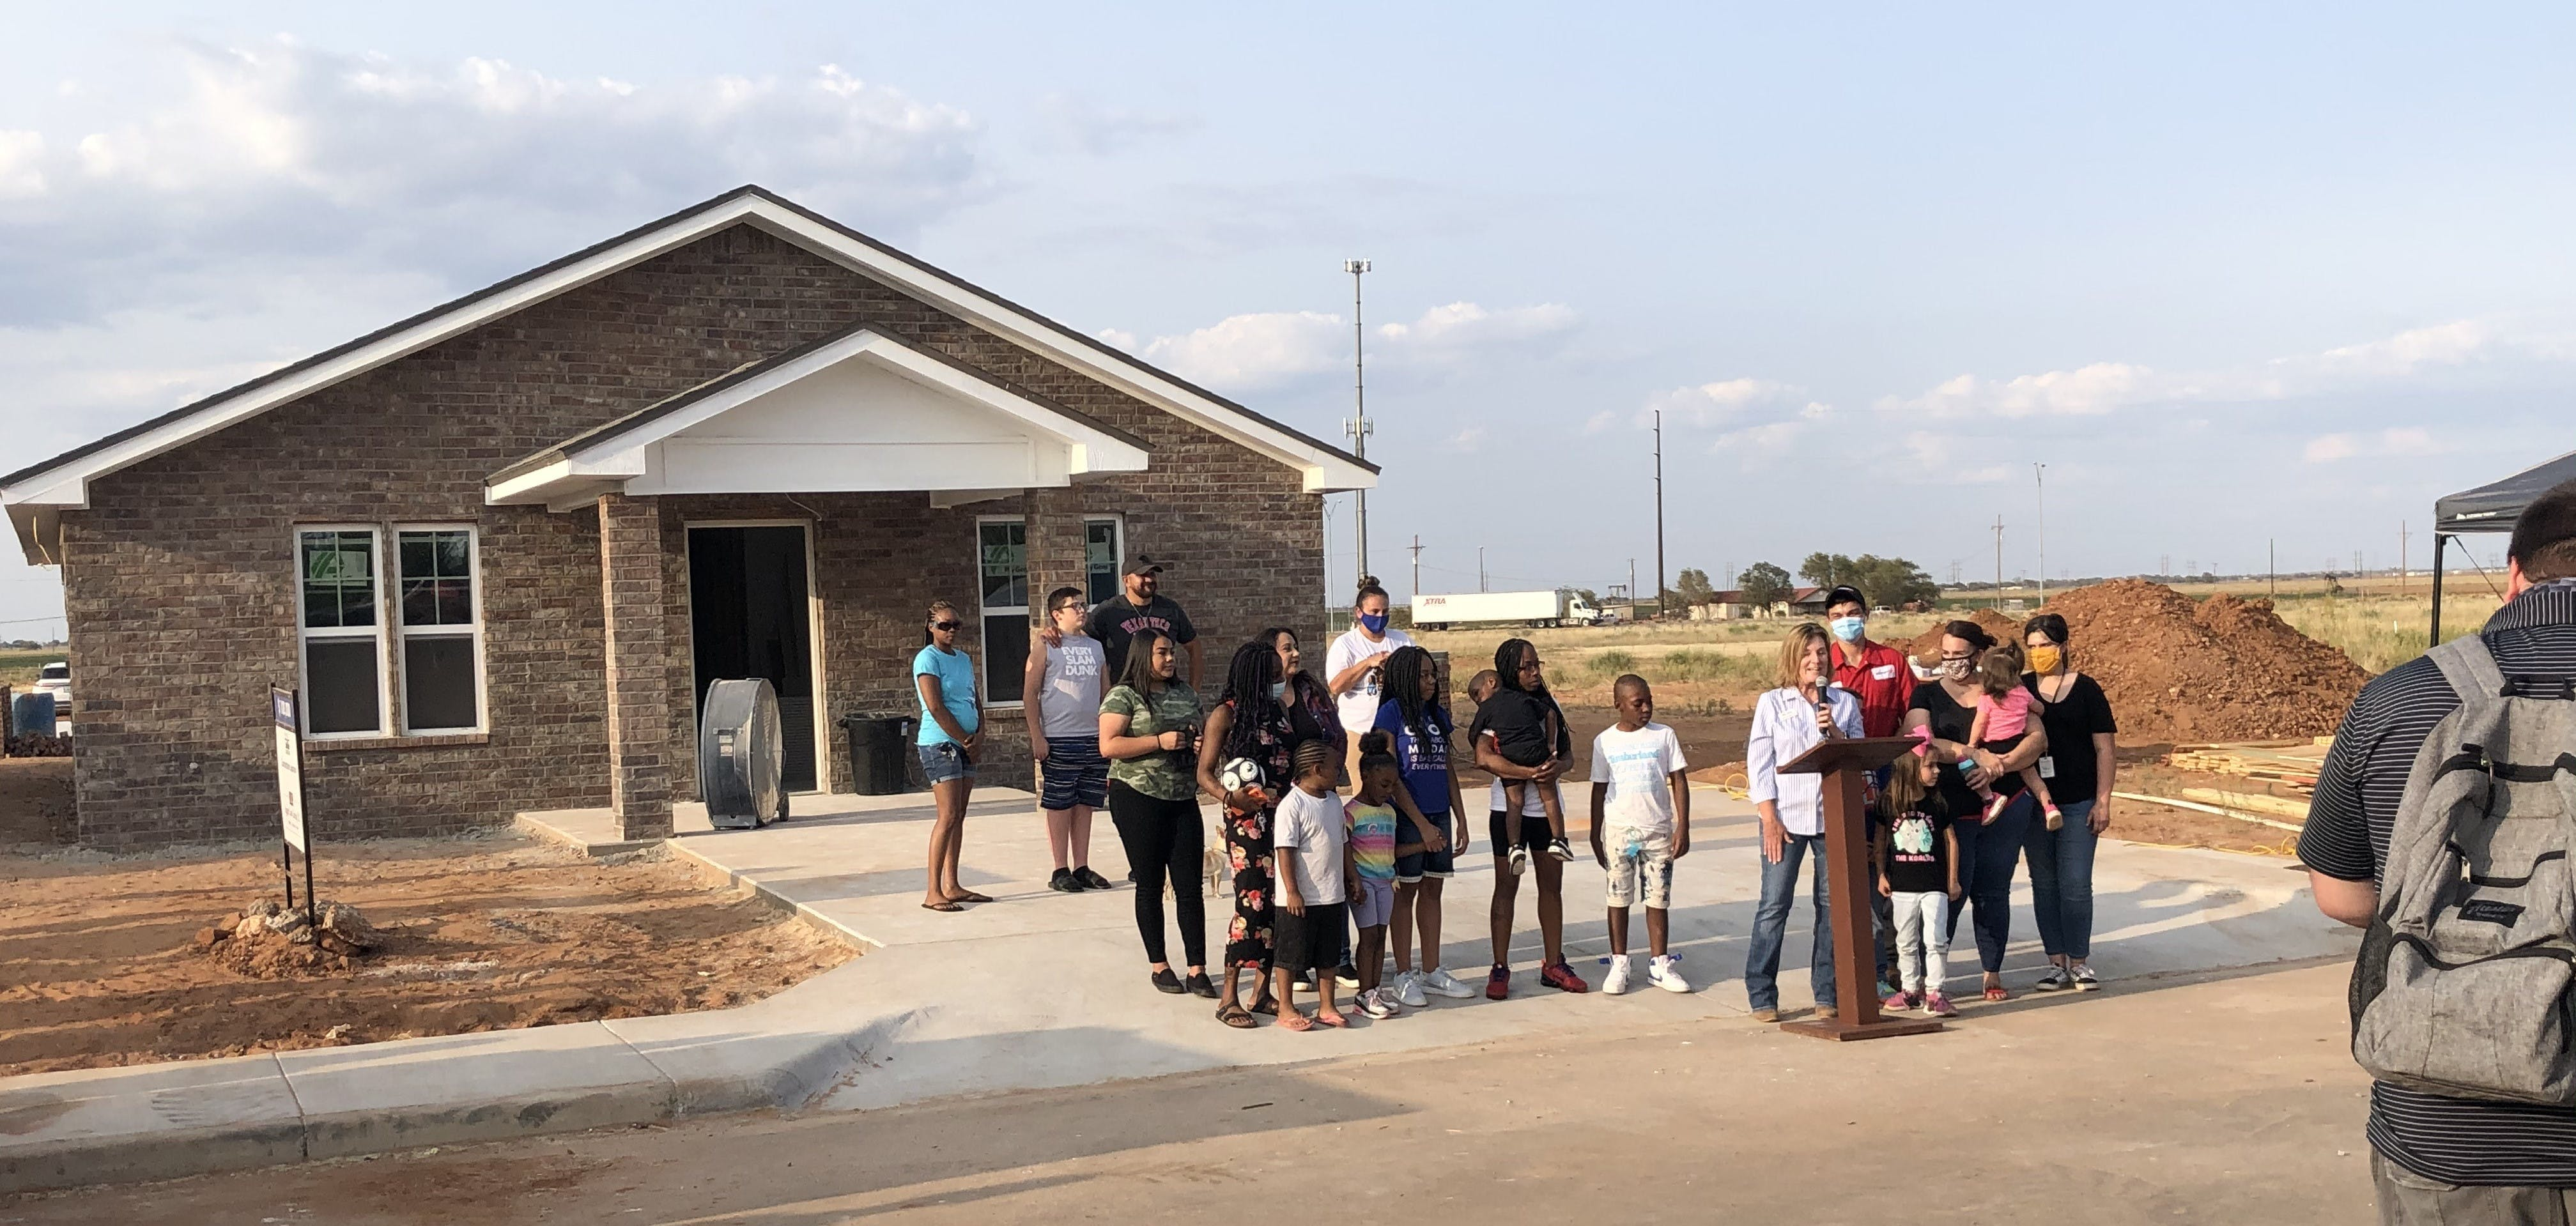 A home of their own - Lubbock family gets keys to Habitat for Humanity house